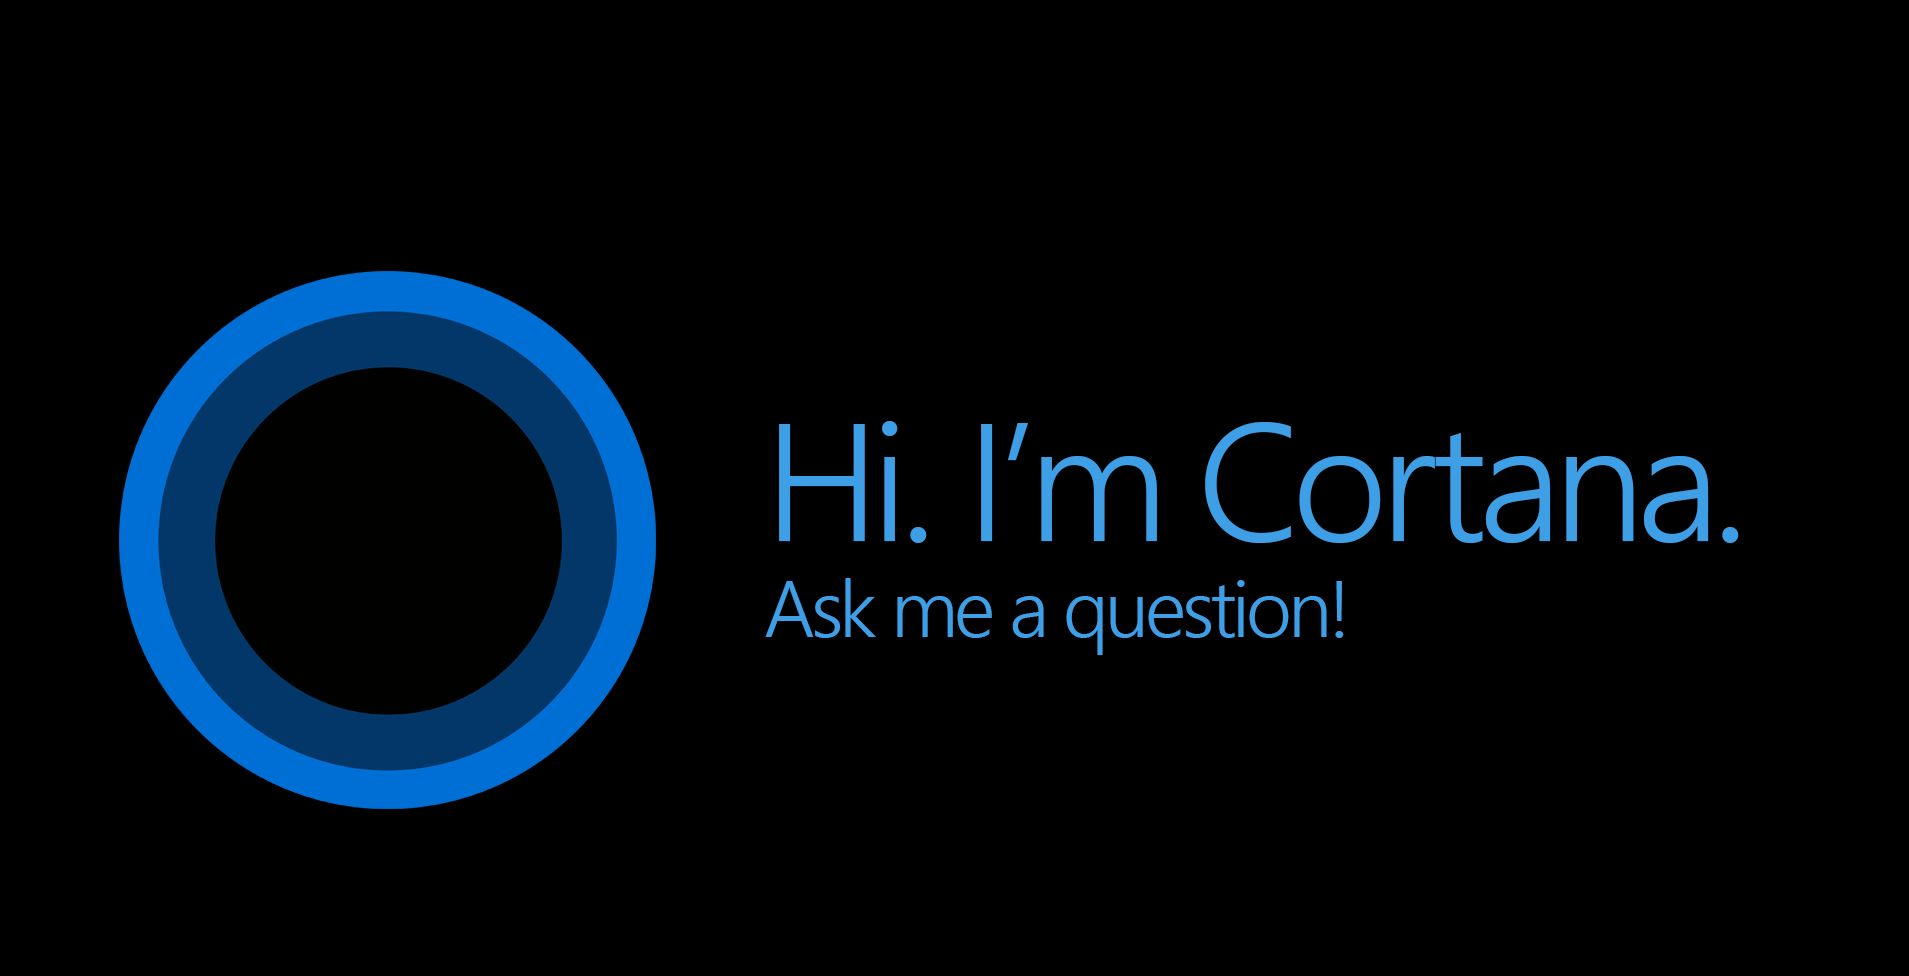 So Cortana can now figure out your future travel plans